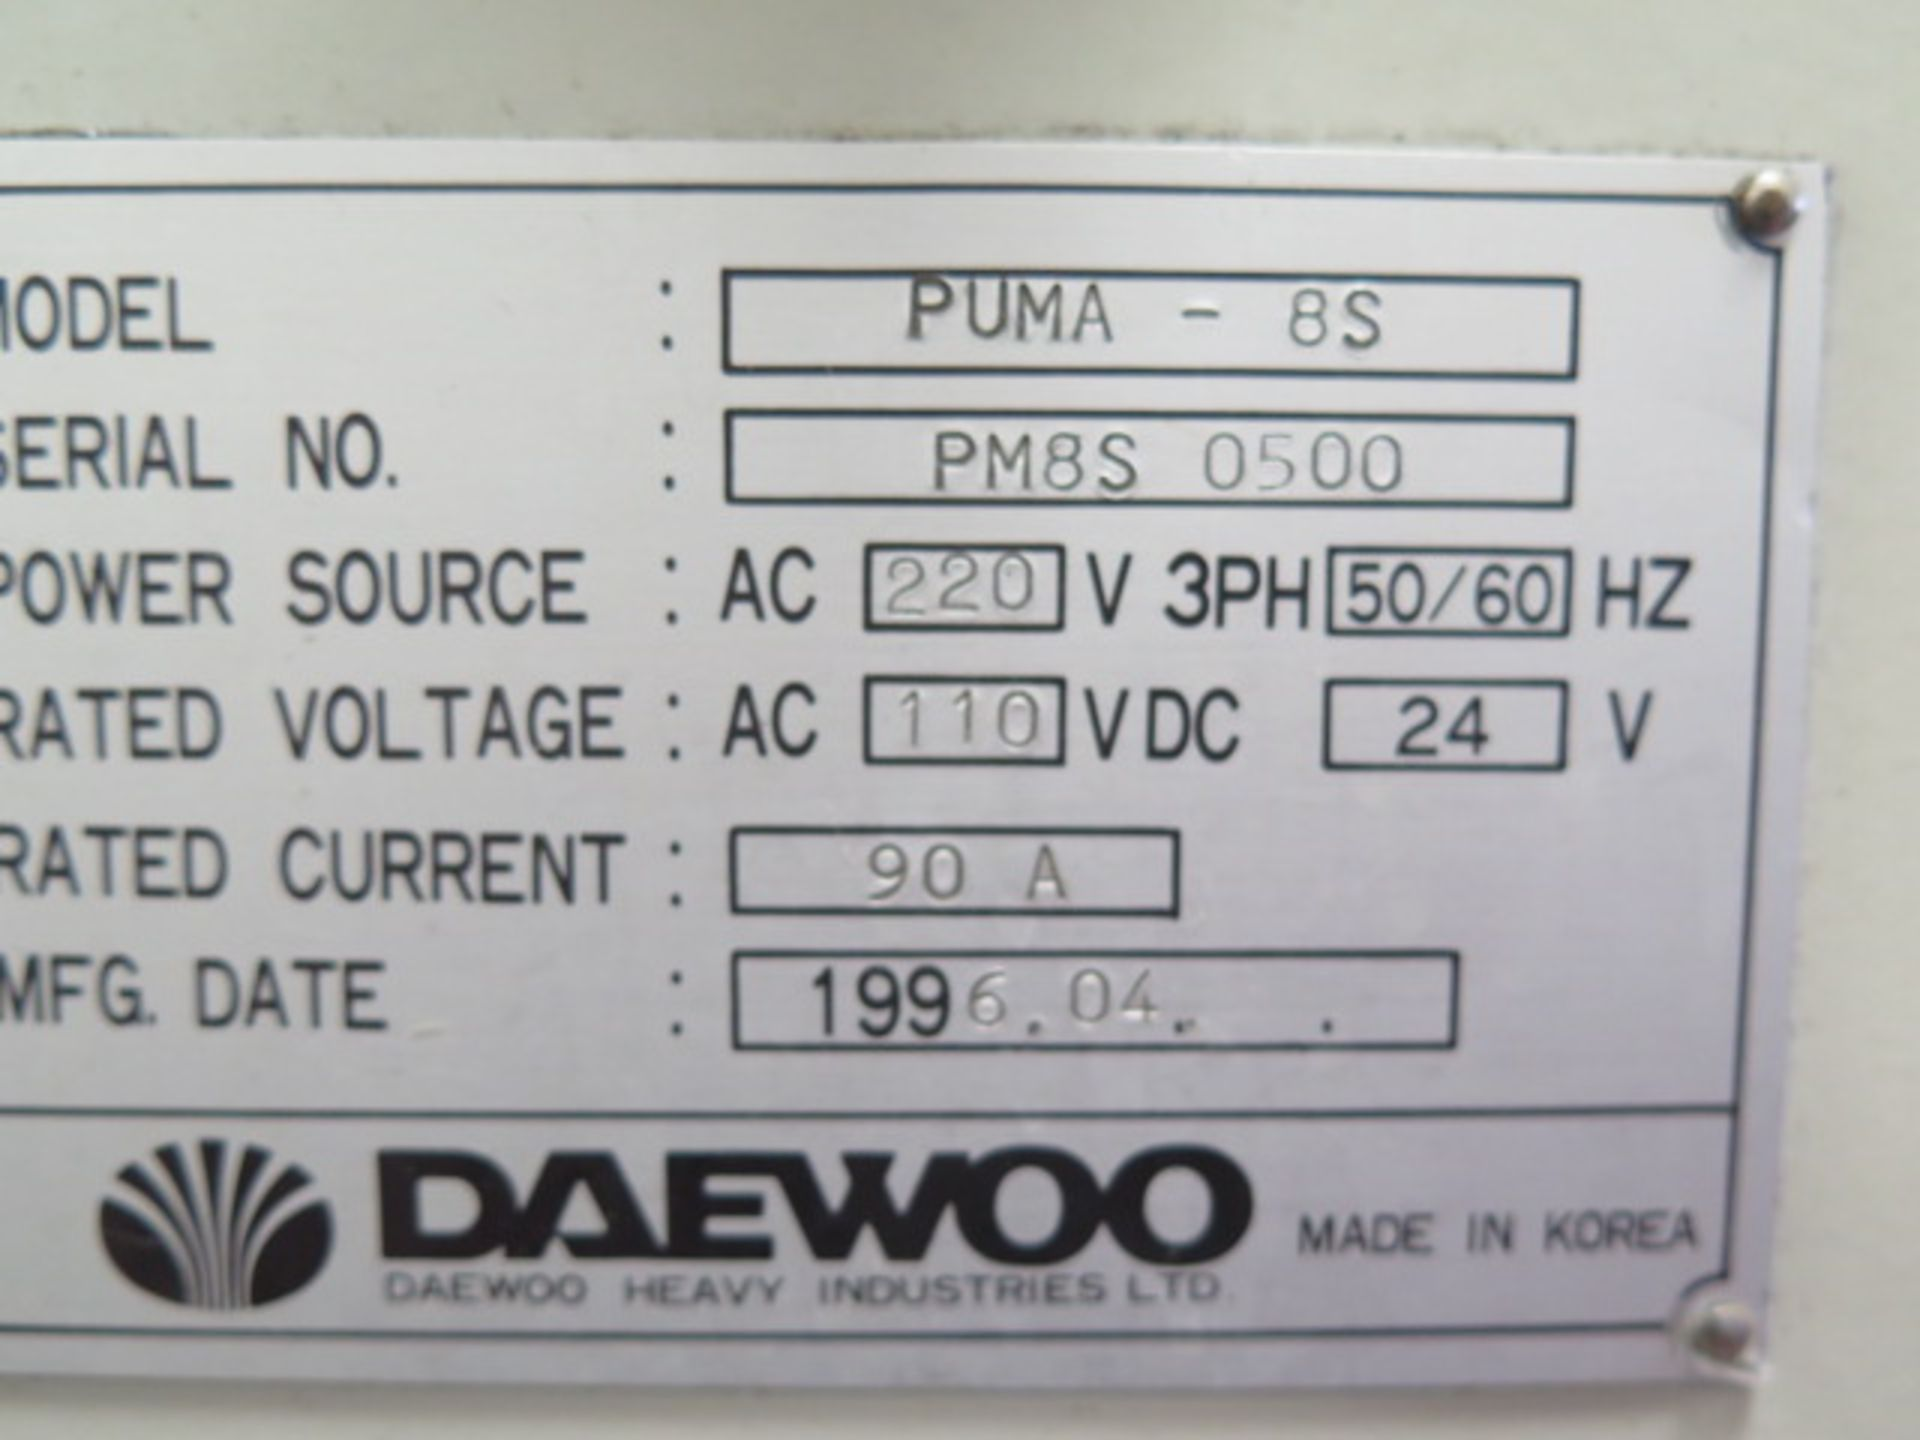 1996 Daewoo PUMA 8S CNC Turning Center s/n PM8S0500 w/ Mits Controls, Tool Presetter, SOLD AS IS - Image 14 of 14